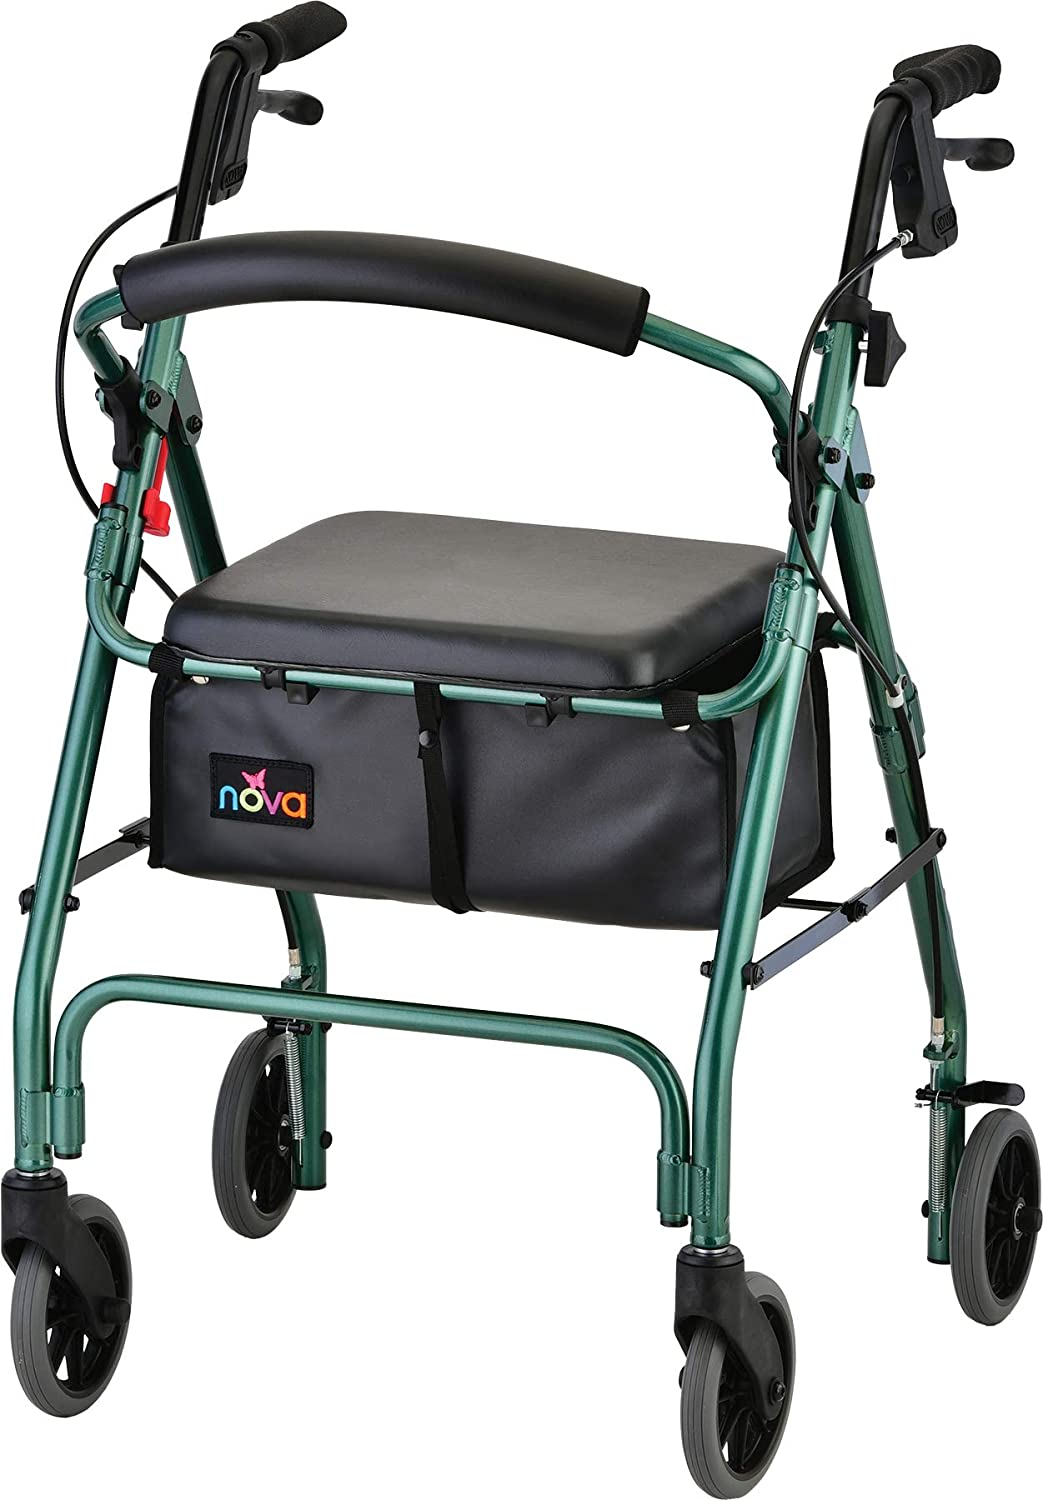 "NOVA GetGo Classic Rollator Walker (Standard Size), Rolling Walker for Height 5'4"" - 6'1"", Seat Height is 22.25"", Color Green"